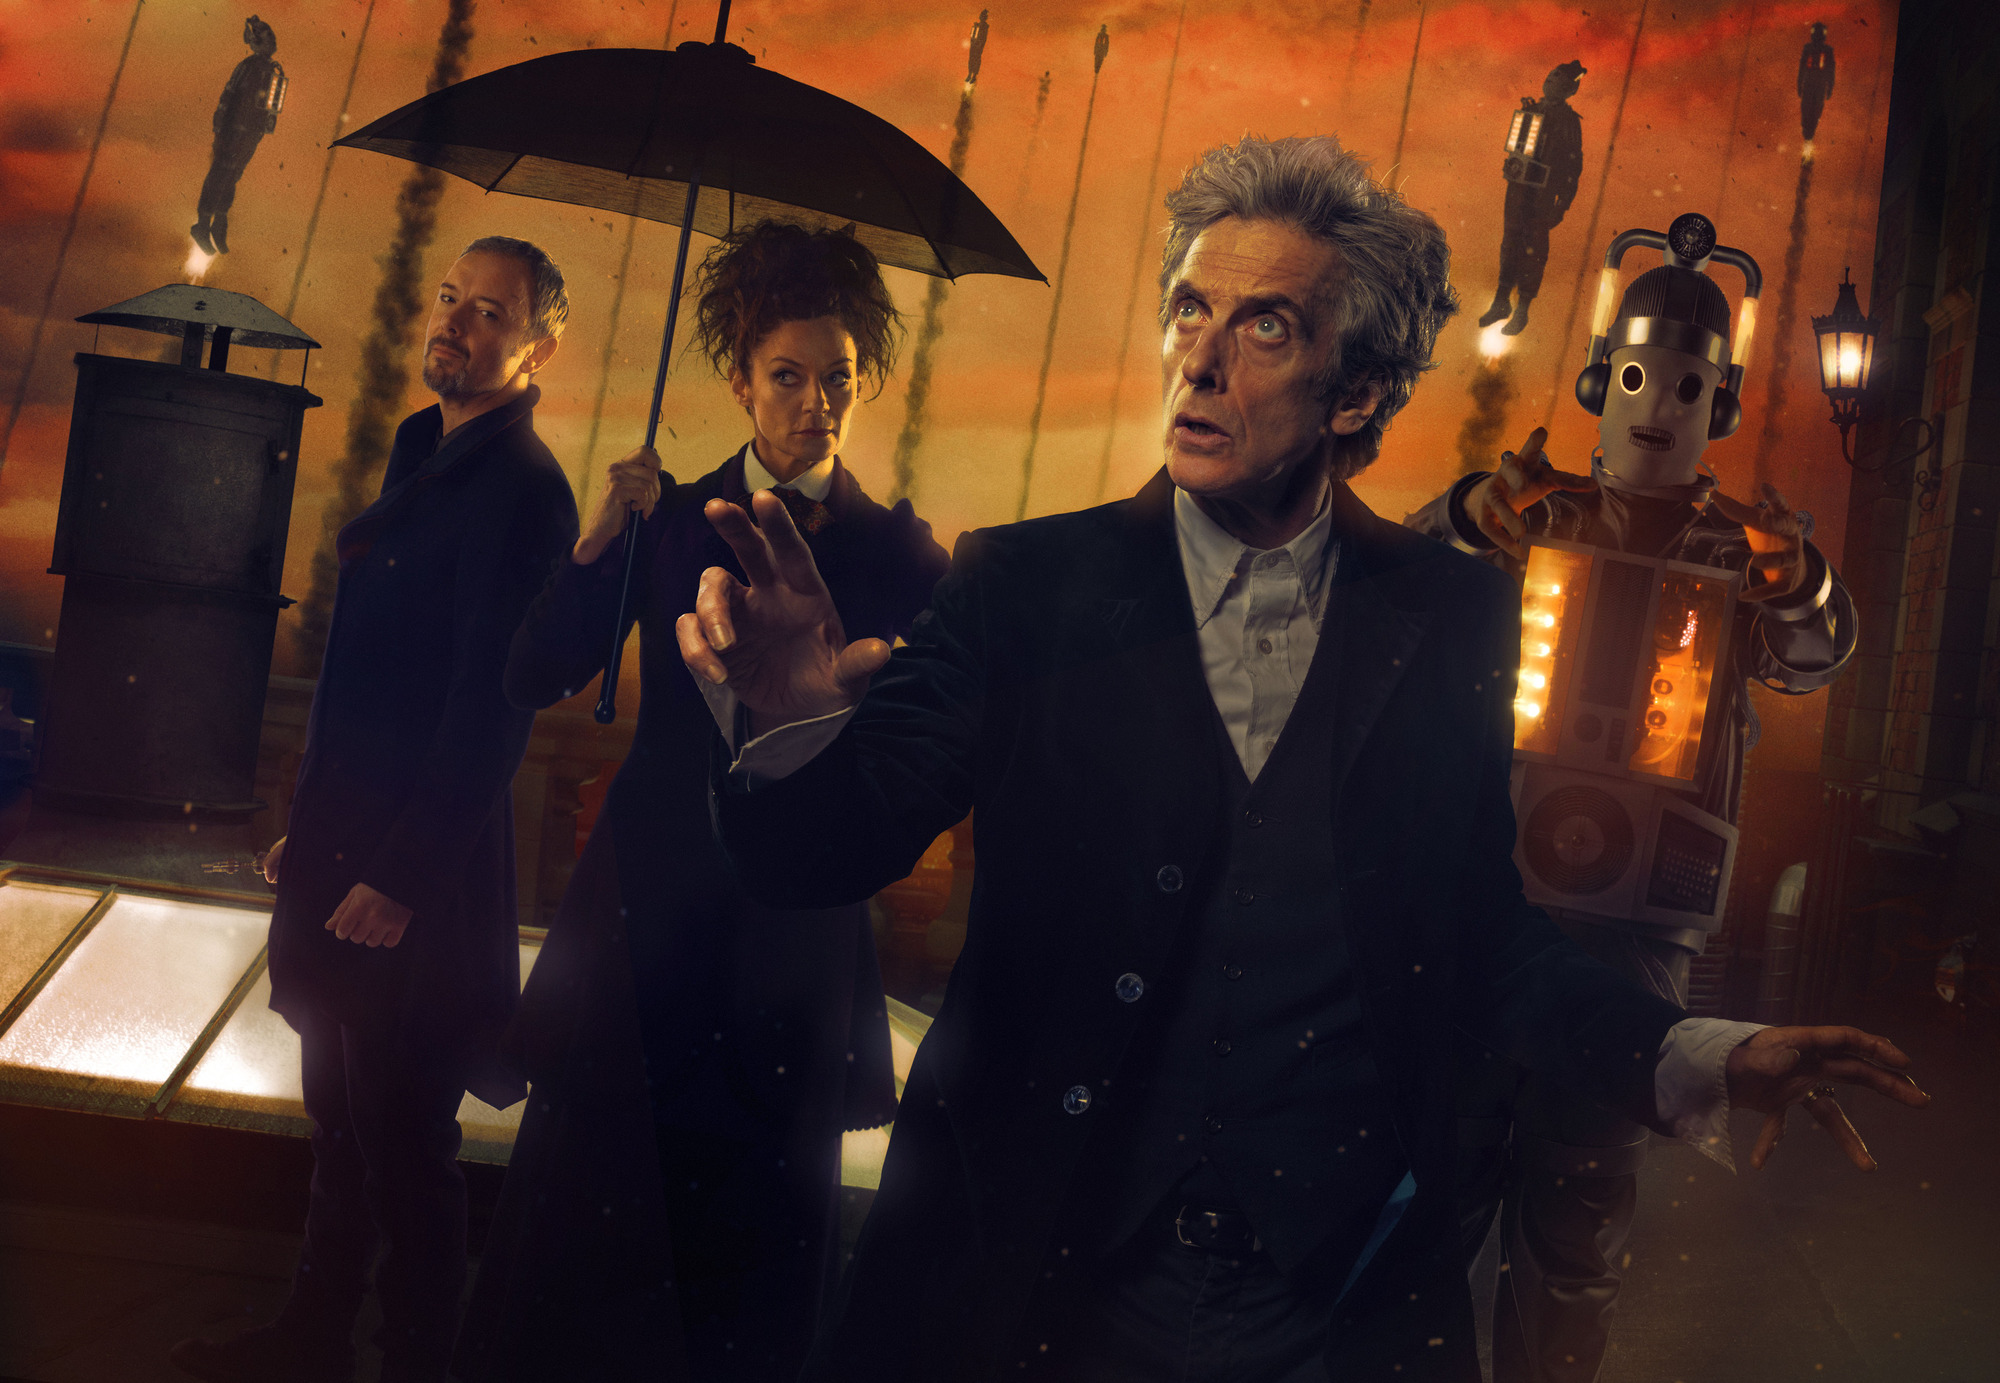 The Doctor Falls : The Master (John Simm), Missy (Michelle Gomez), The Doctor (Peter Capaldi) (Credit: BBC/BBC Worldwide (Simon Ridgway/Ray Burmiston))